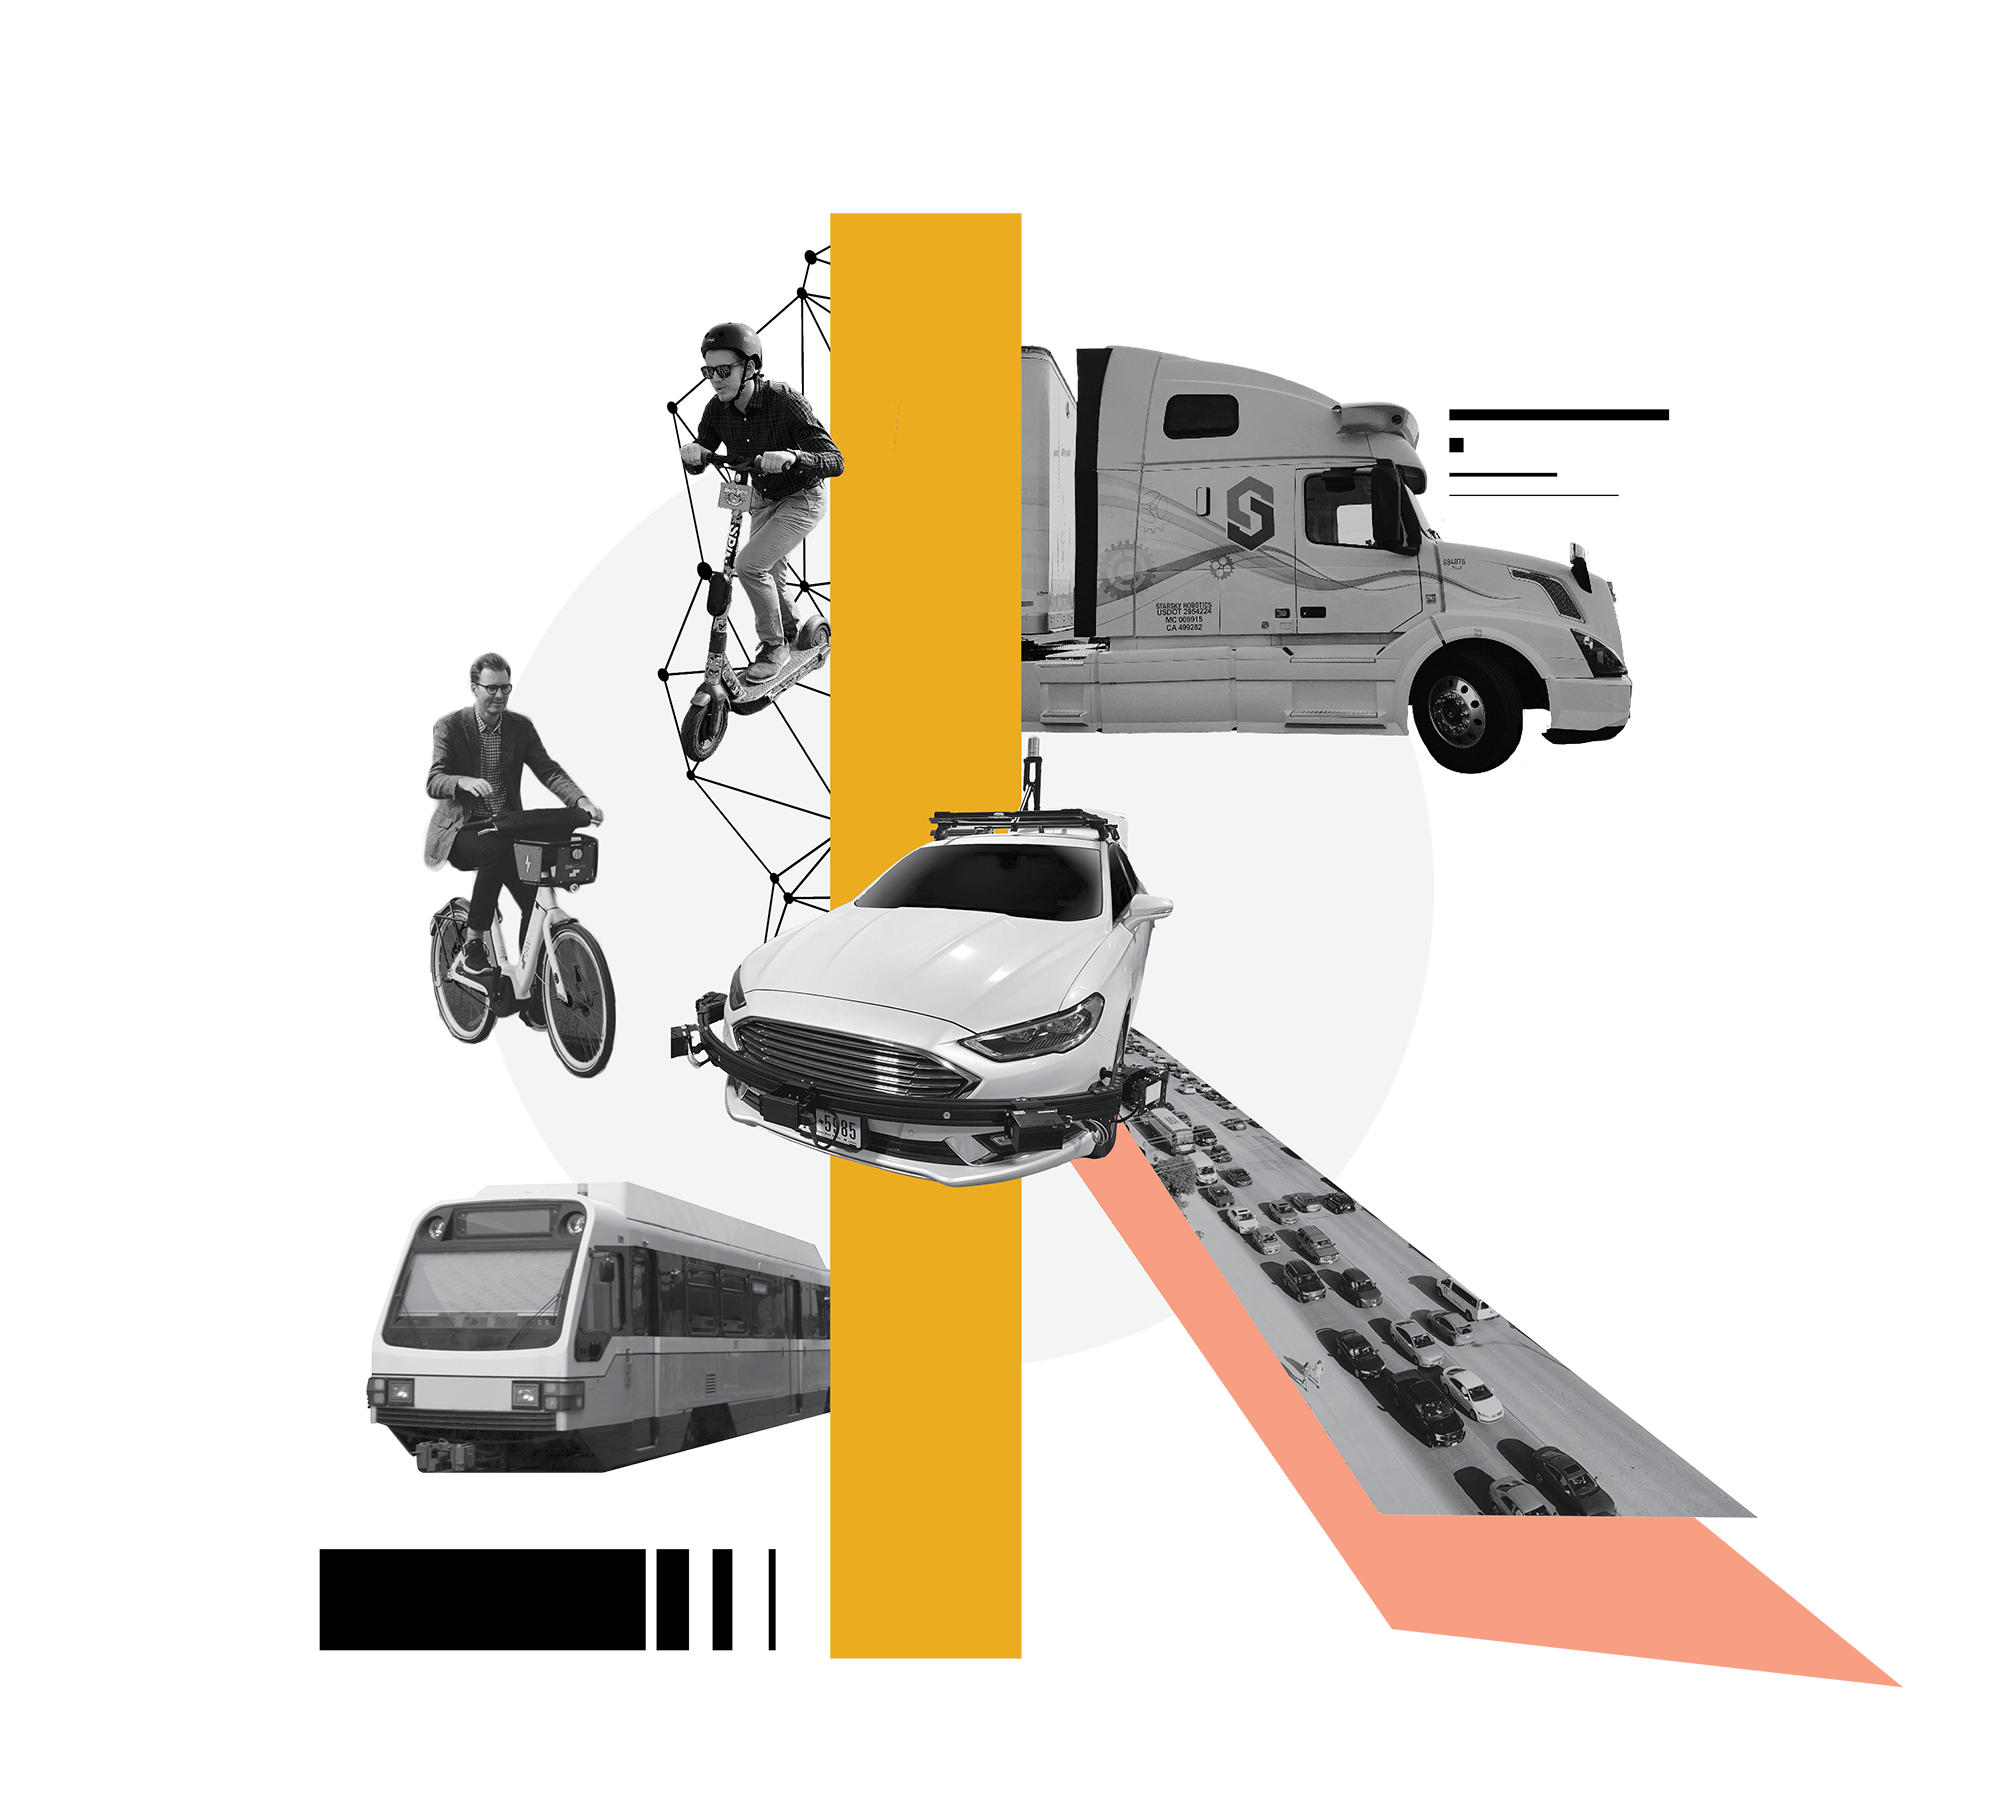 A collage featuring a man on a scooter, a man on a bicycle, a bus, a self driving car, a self driving freight truck, and a road filled with cars. There is a yellow bar cutting the middle and a light red triangle on the bottom right. There is a big circle on the background and all the images are in black and white.